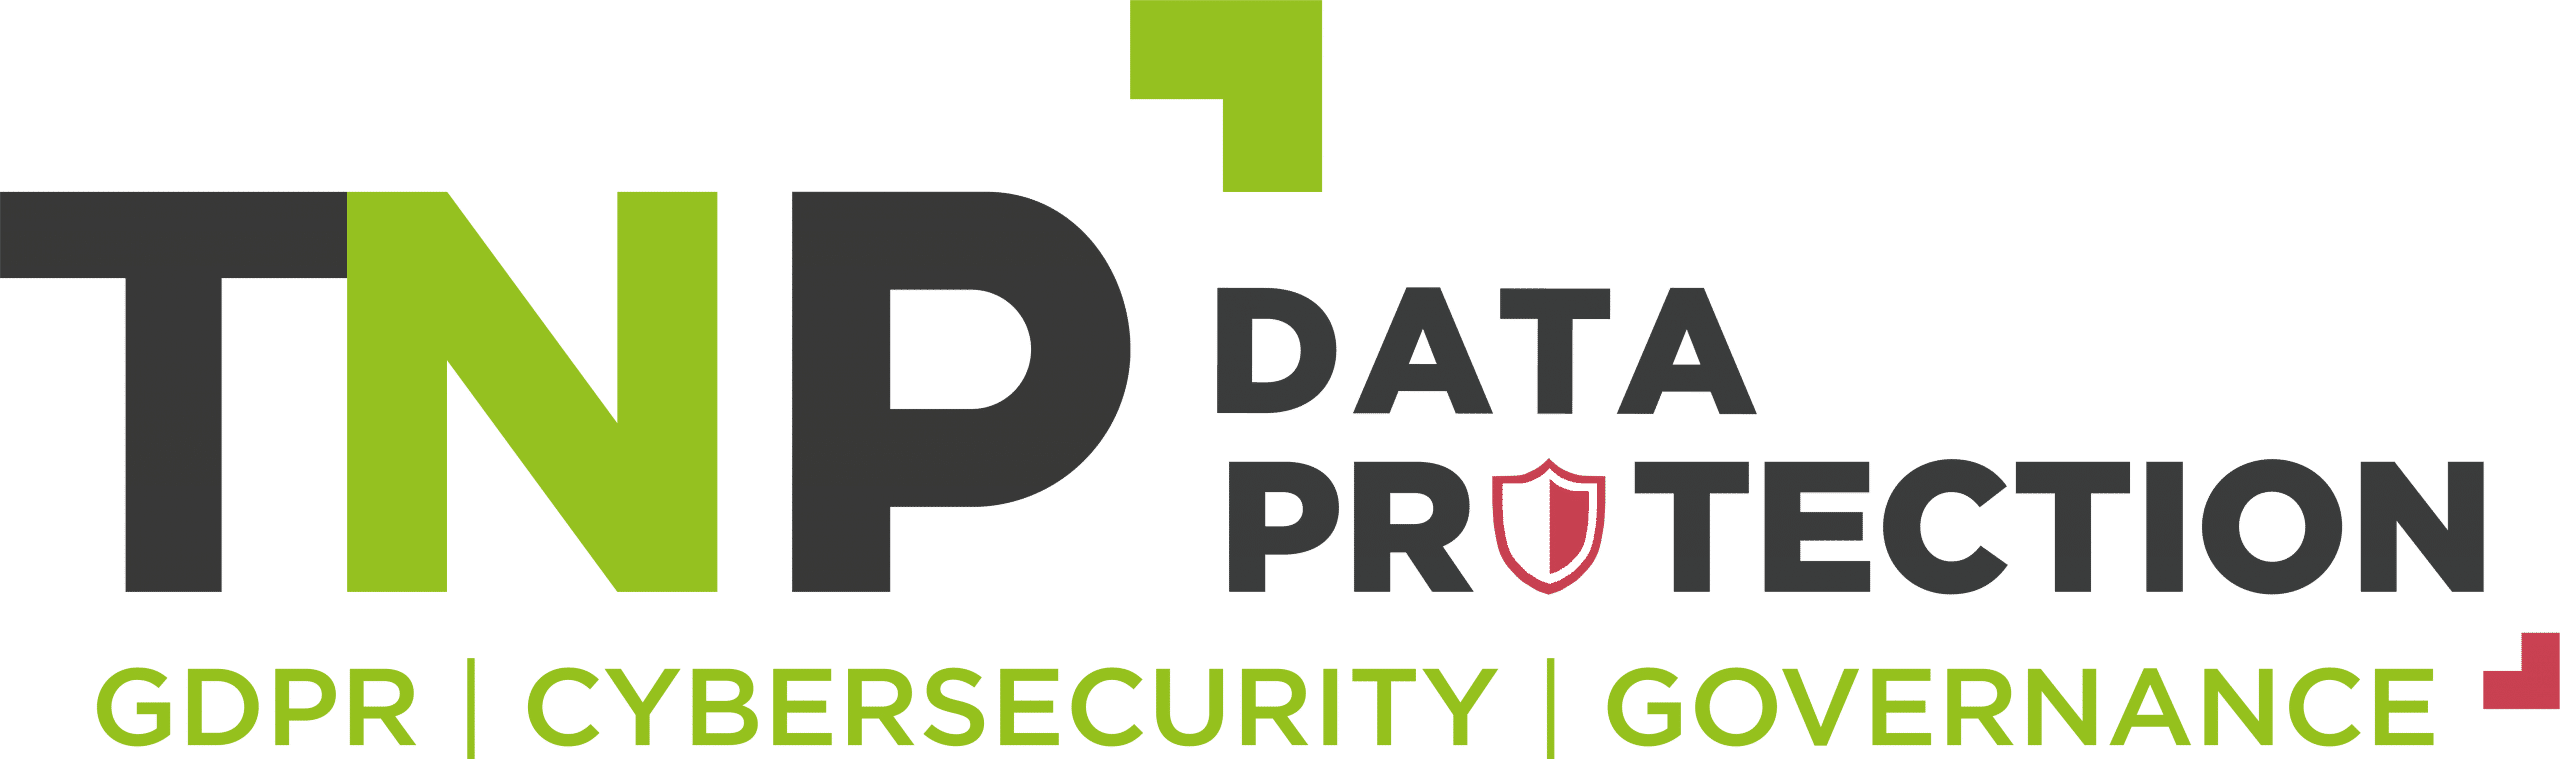 TNP Data Protection